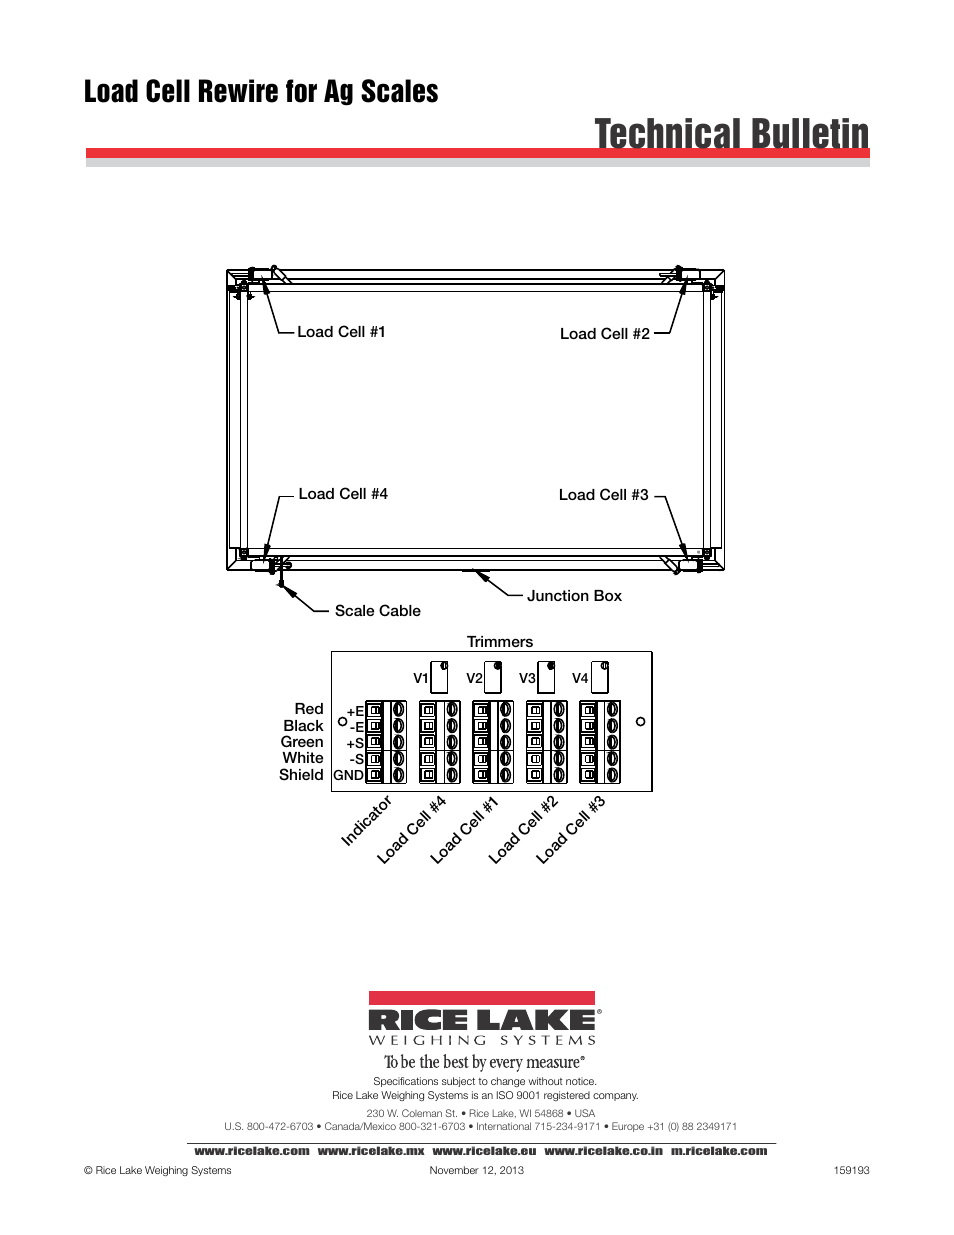 rice lake stationary livestock scale - mas-lc